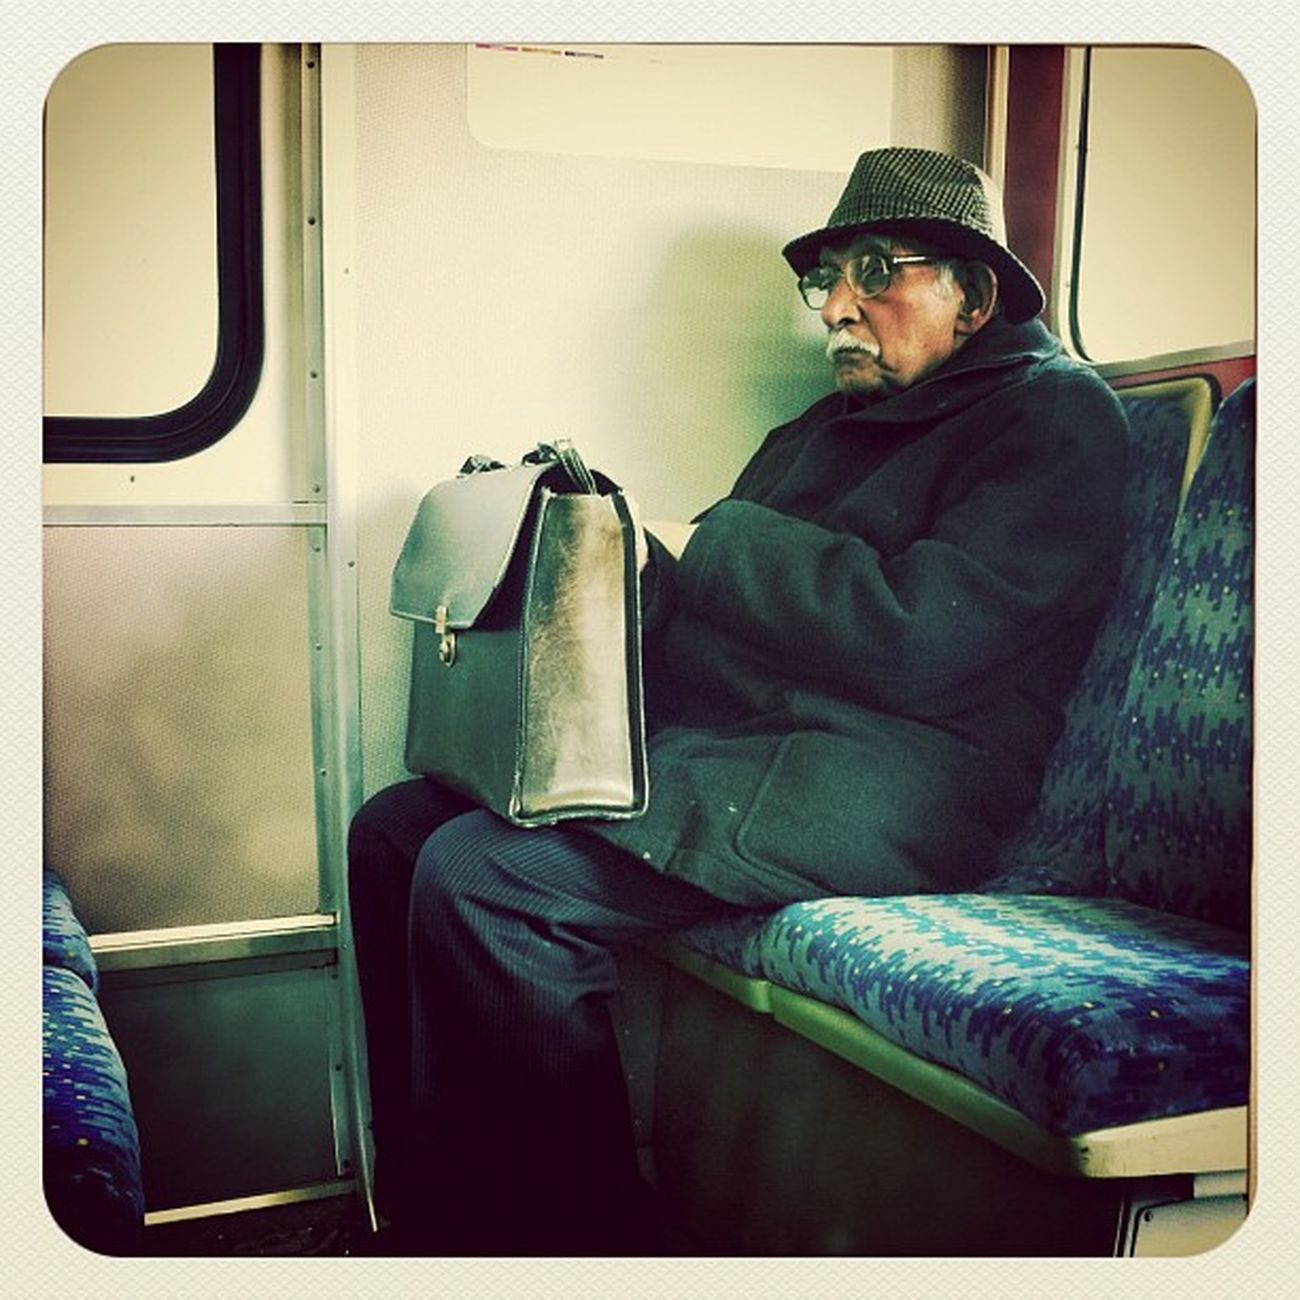 #iphoneography #iphone #instagram #strangers #publictransportpeople #train IPhone IPhoneography Train Strangers Instagram Publictransportpeople